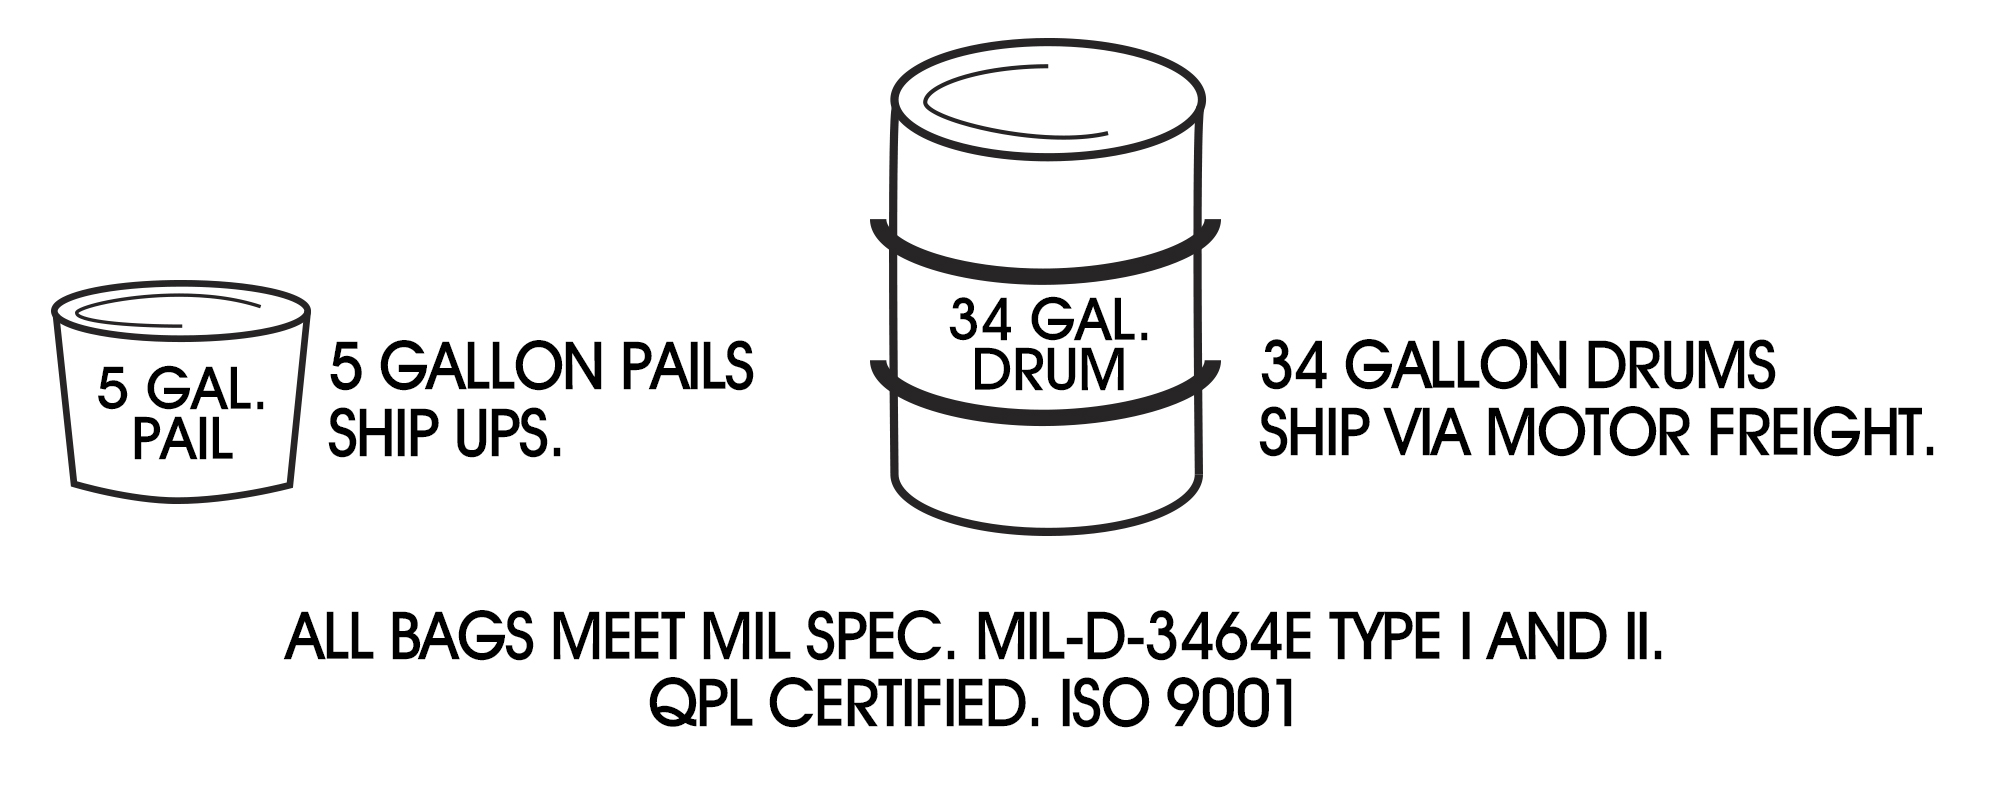 5 Gallon Pail & 34 Gallon Drum